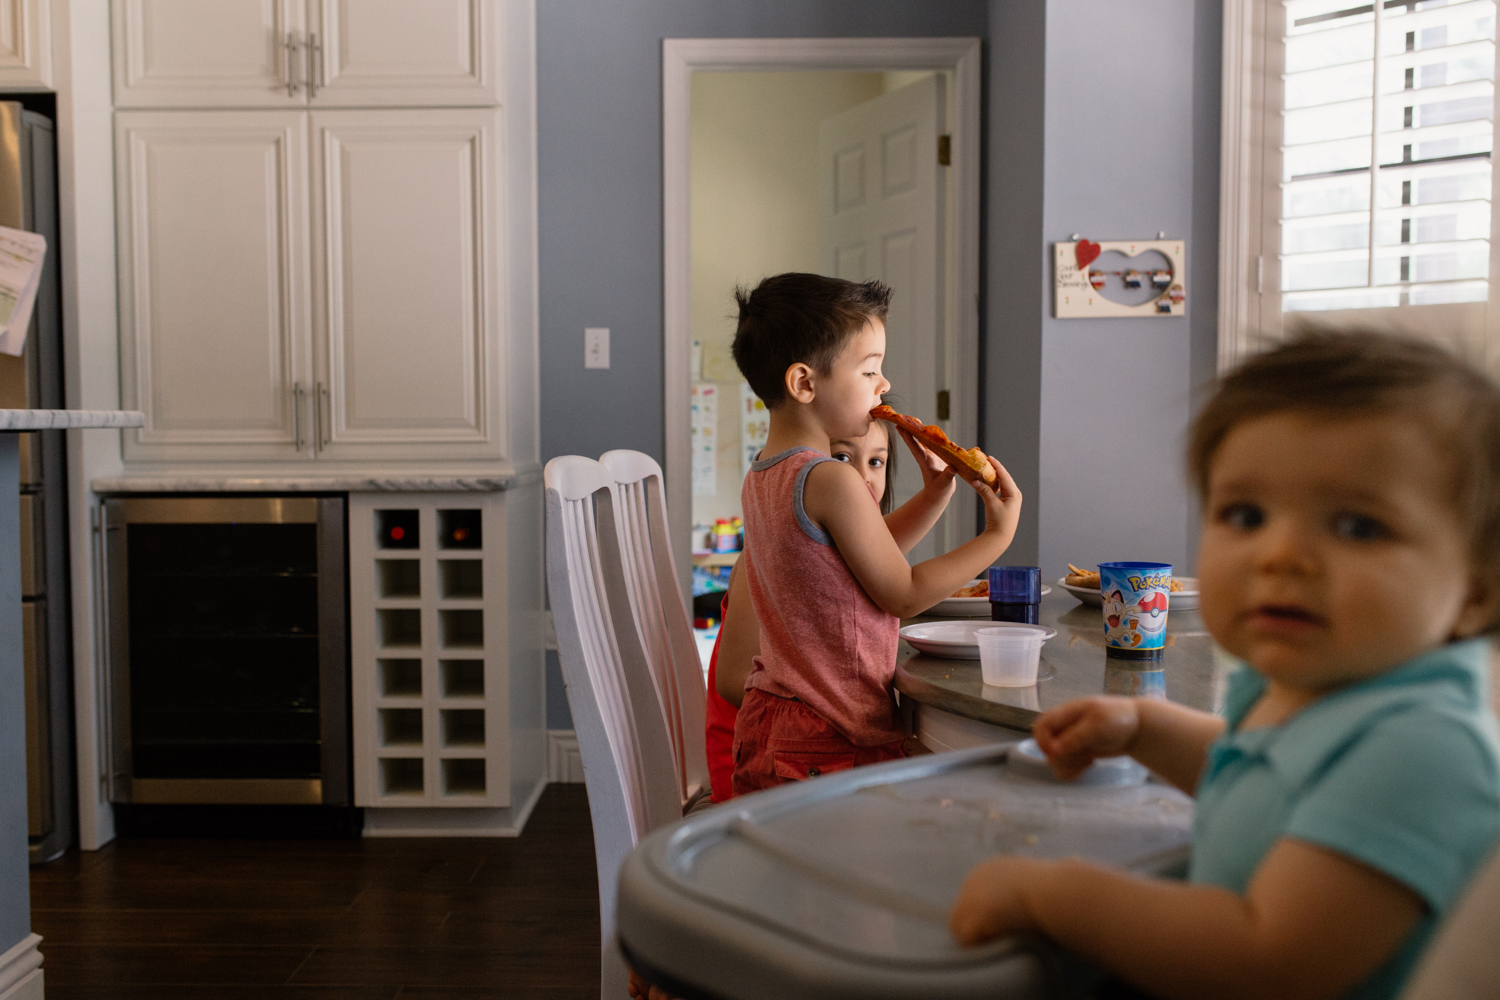 Kids Eating Pizza Orlando Documentary Photographer.jpg